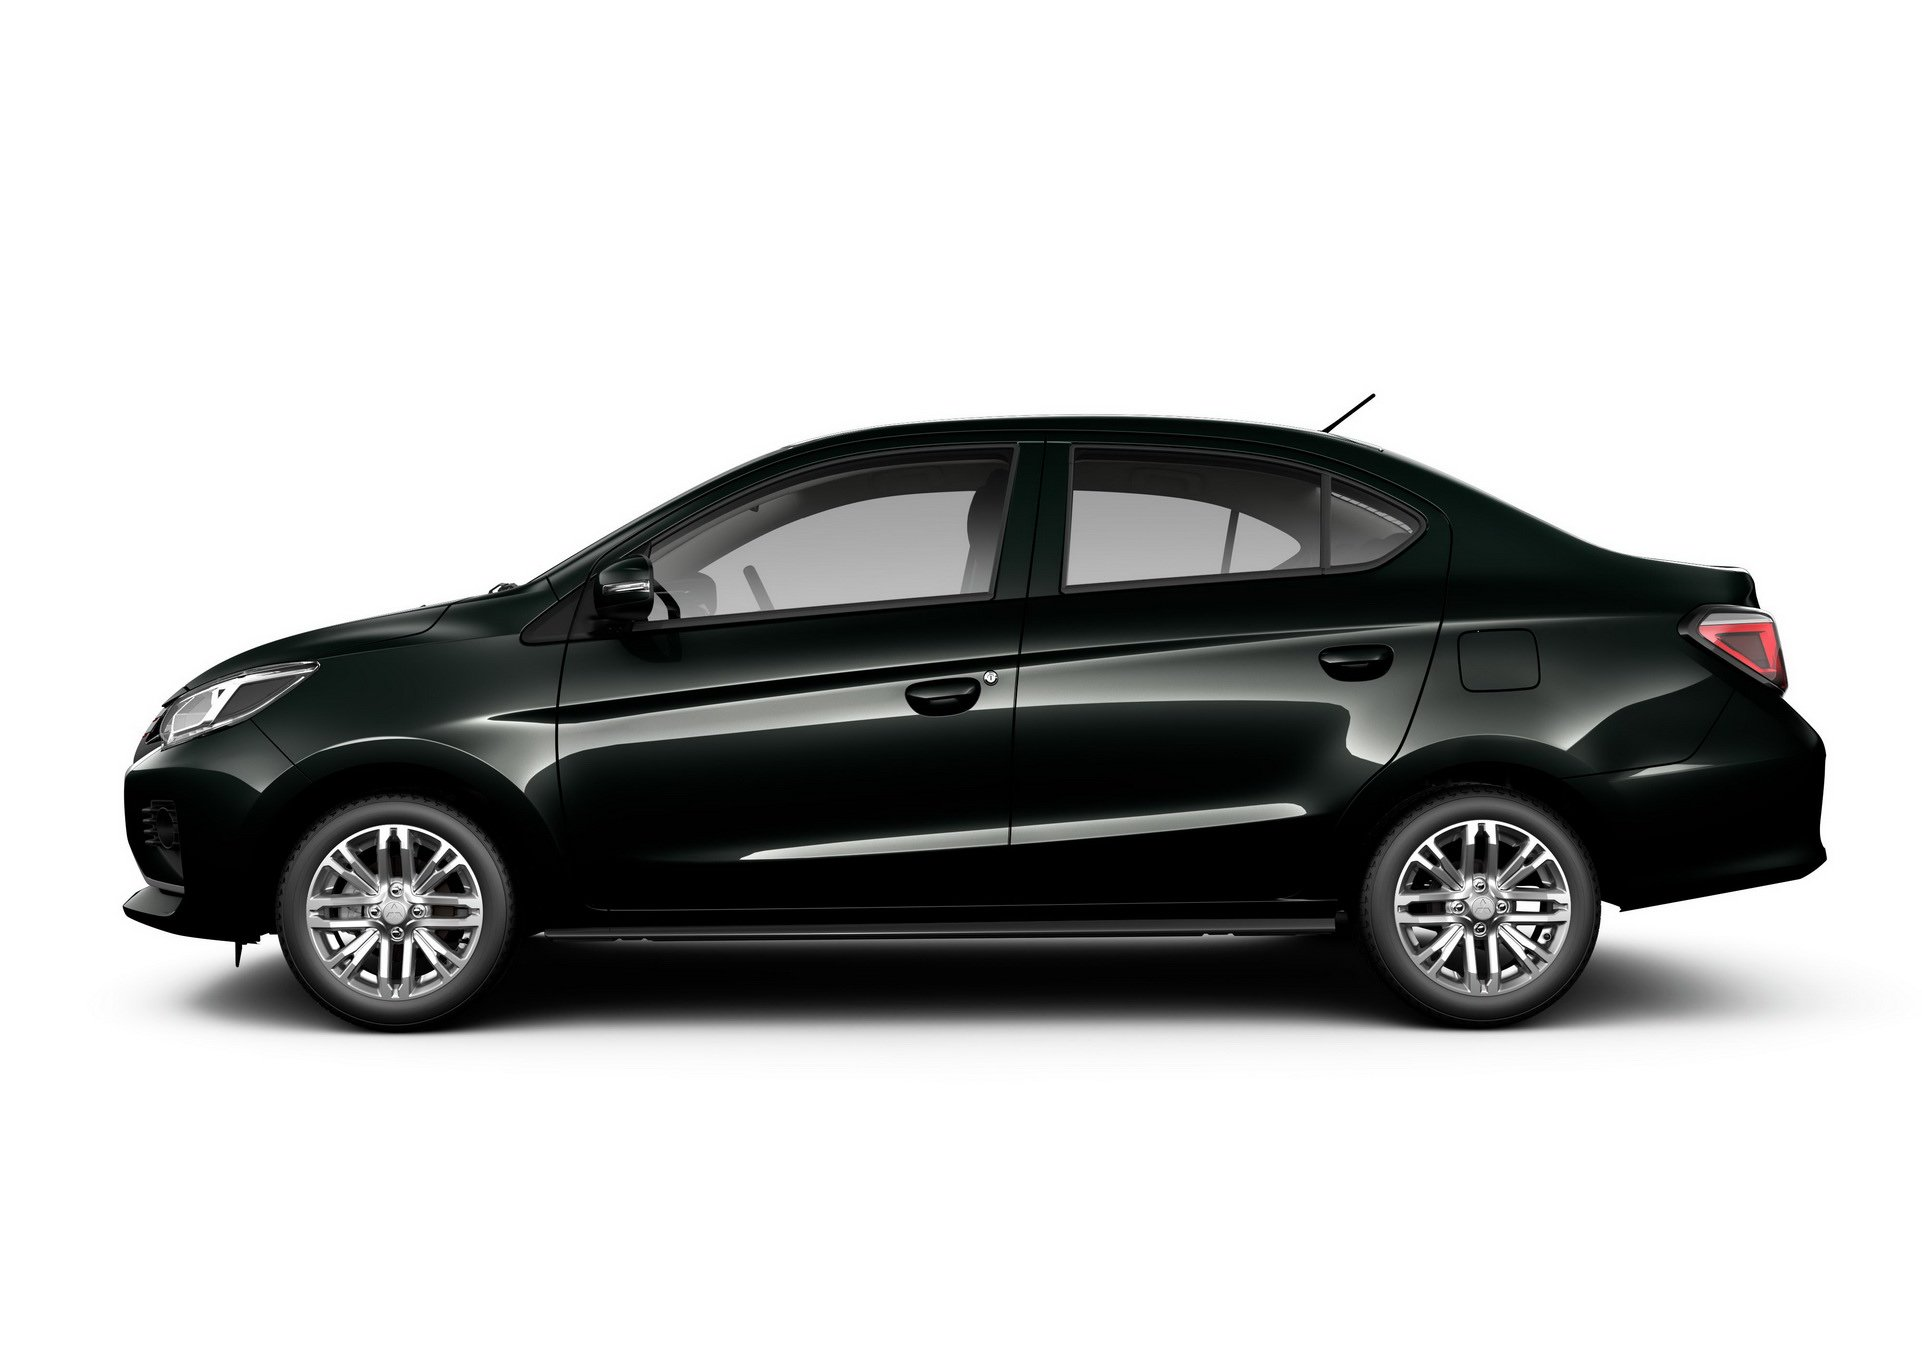 Mitsubishi-Space-Star-facelift-2020-26